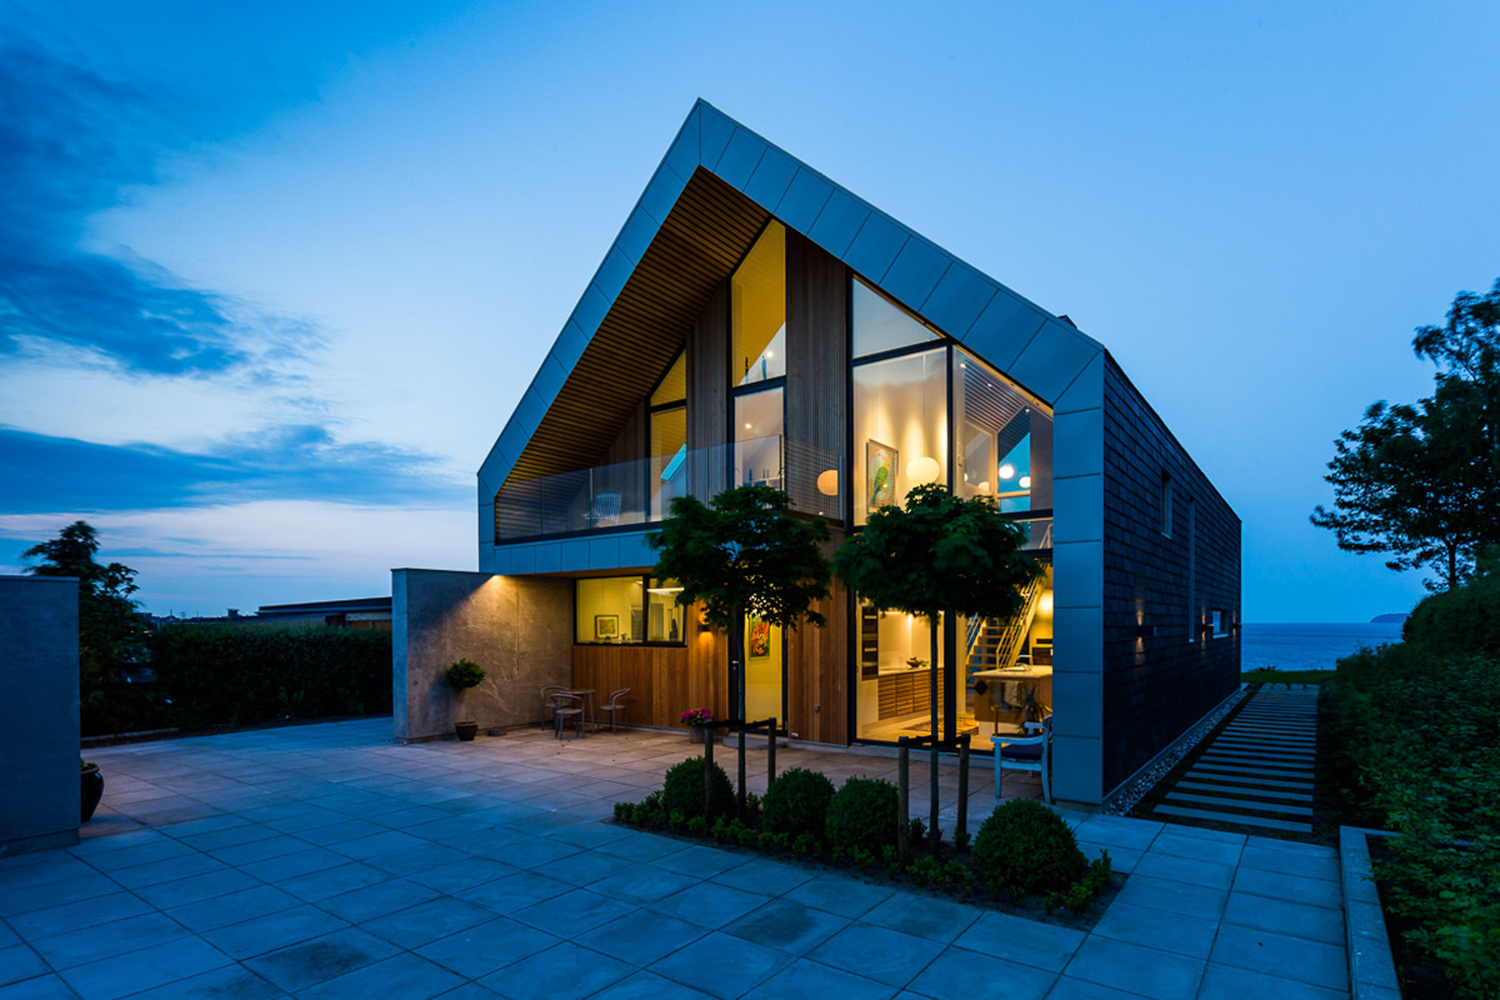 Villa p by n p architecture in denmark for Villa architect